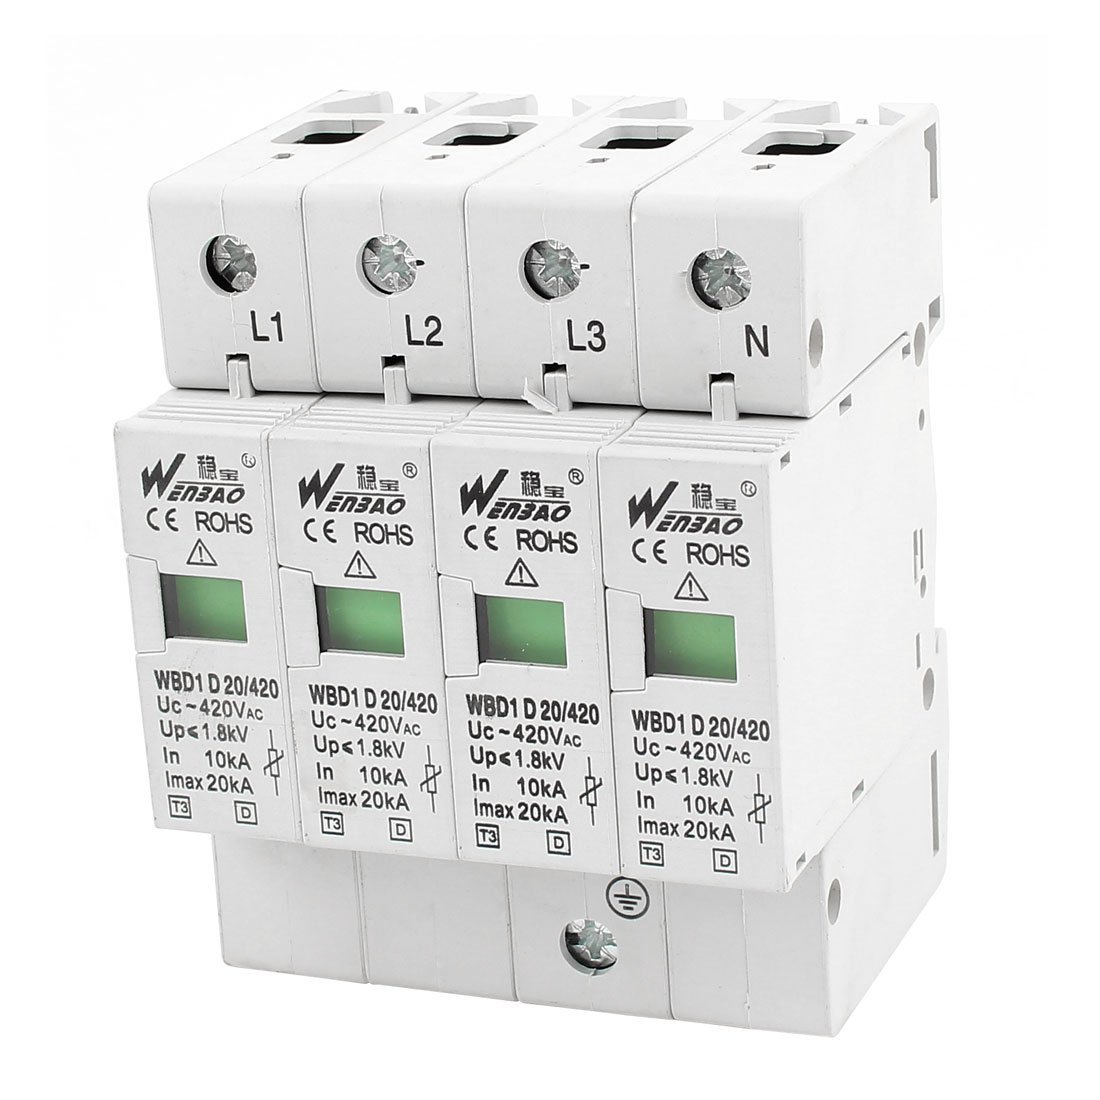 Cheap Din Rail Surge Protector Find Deals Voltage Circuit Get Quotations Uxcell Ac 420v 20ka Lightning Arrester 35mm 4 Pole